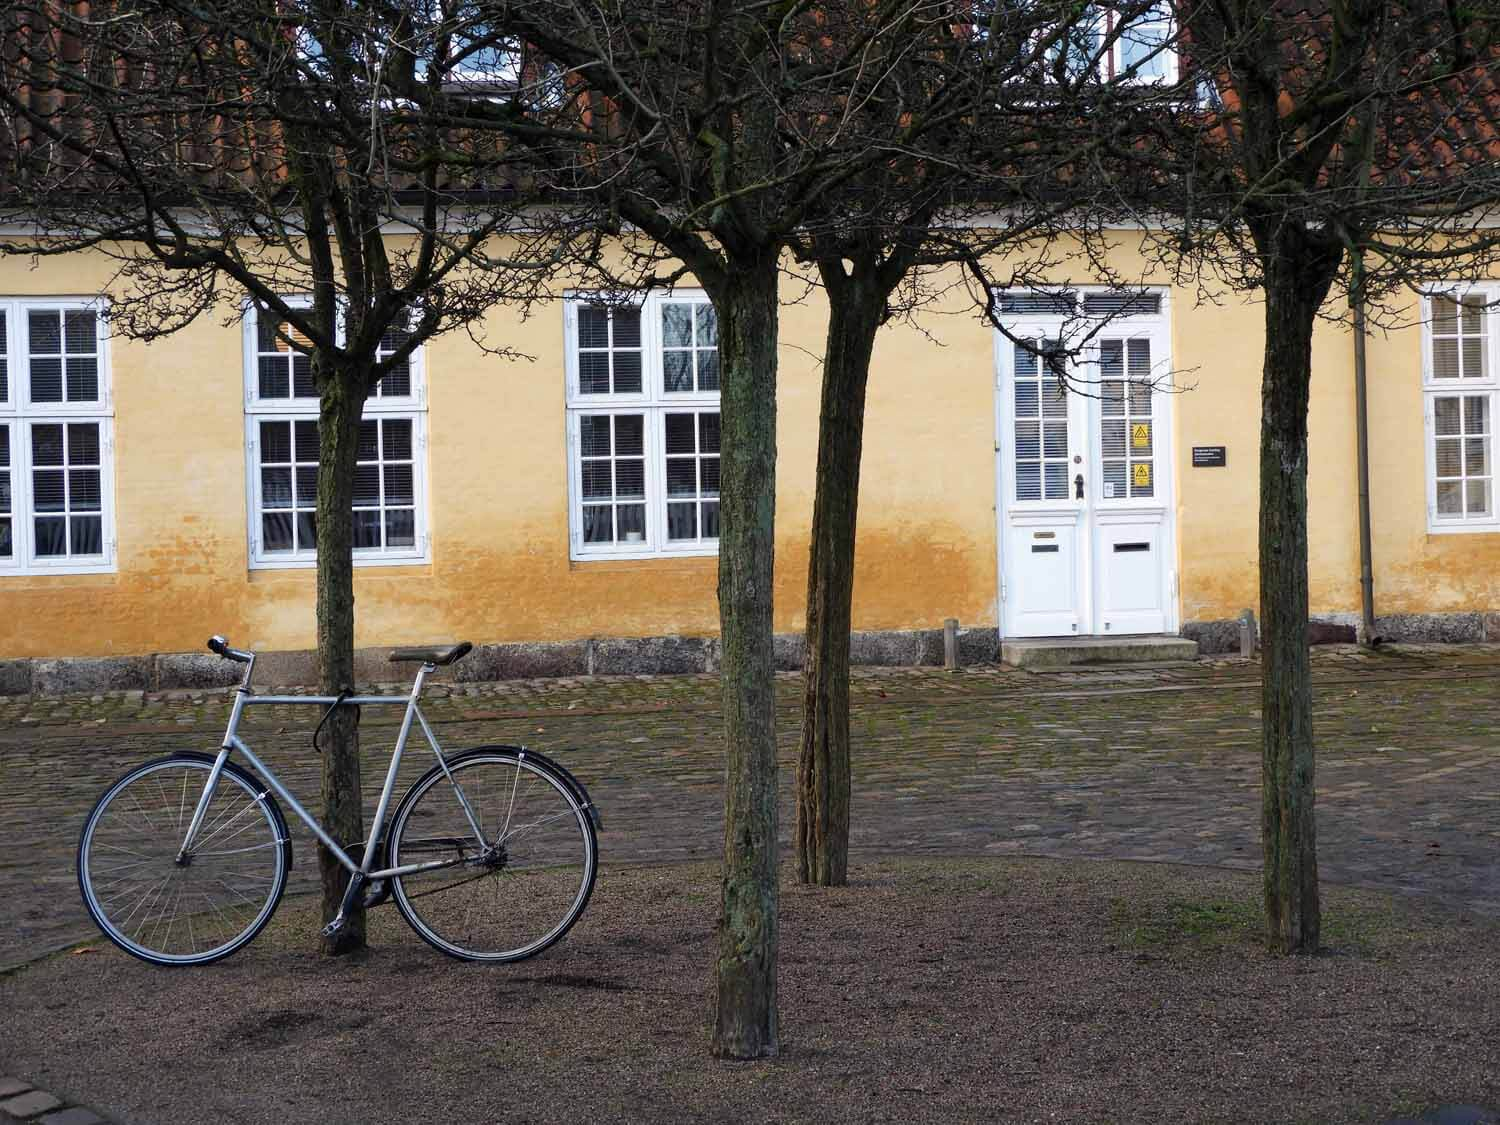 denmark-copenhagen-bicycle-trees-yellow-house.JPG